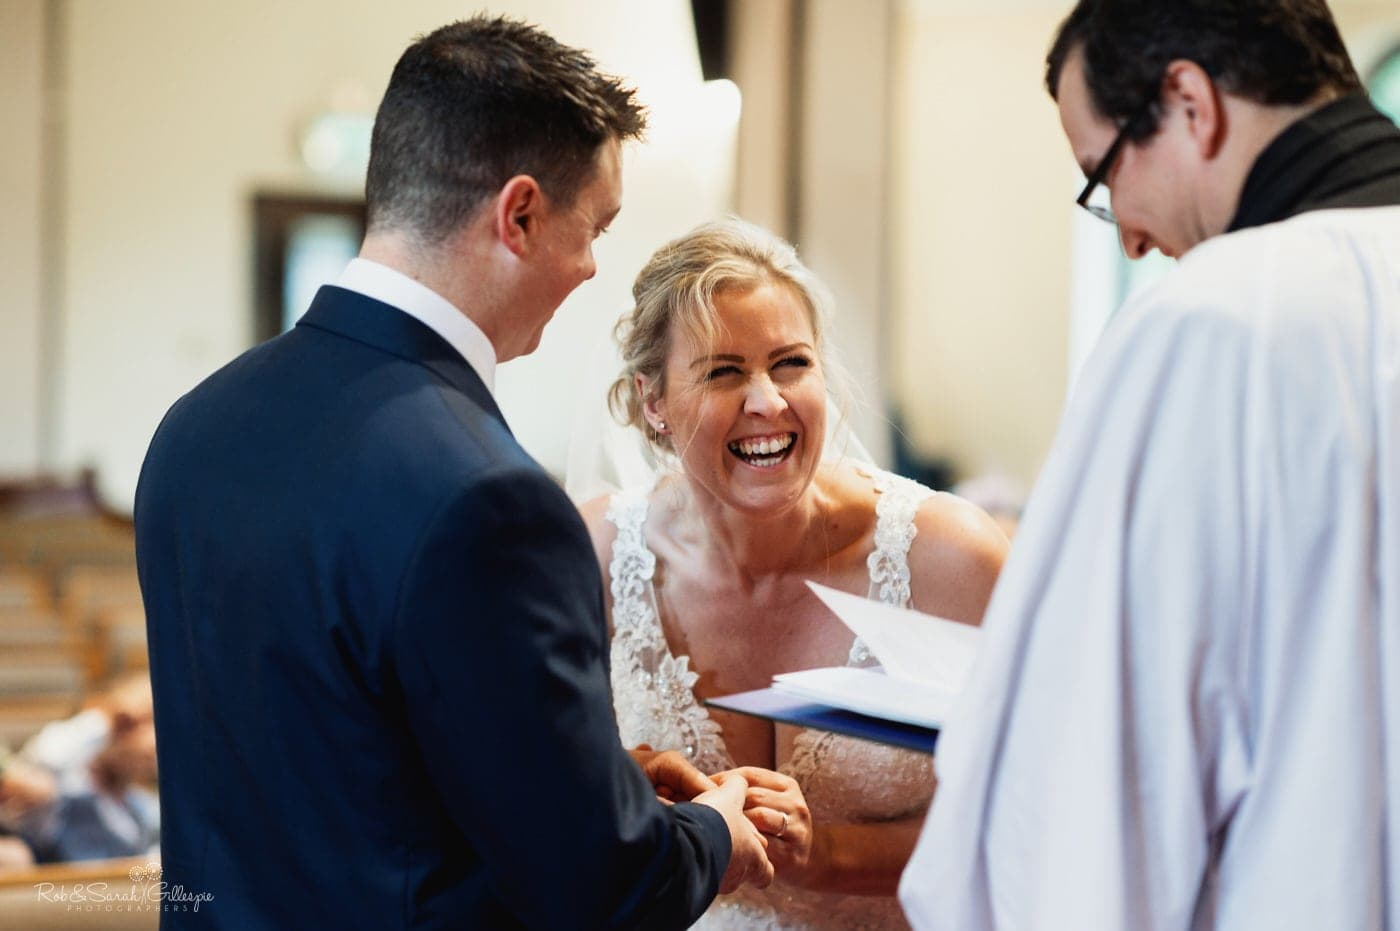 Bride laughing during small wedding ceremony in church